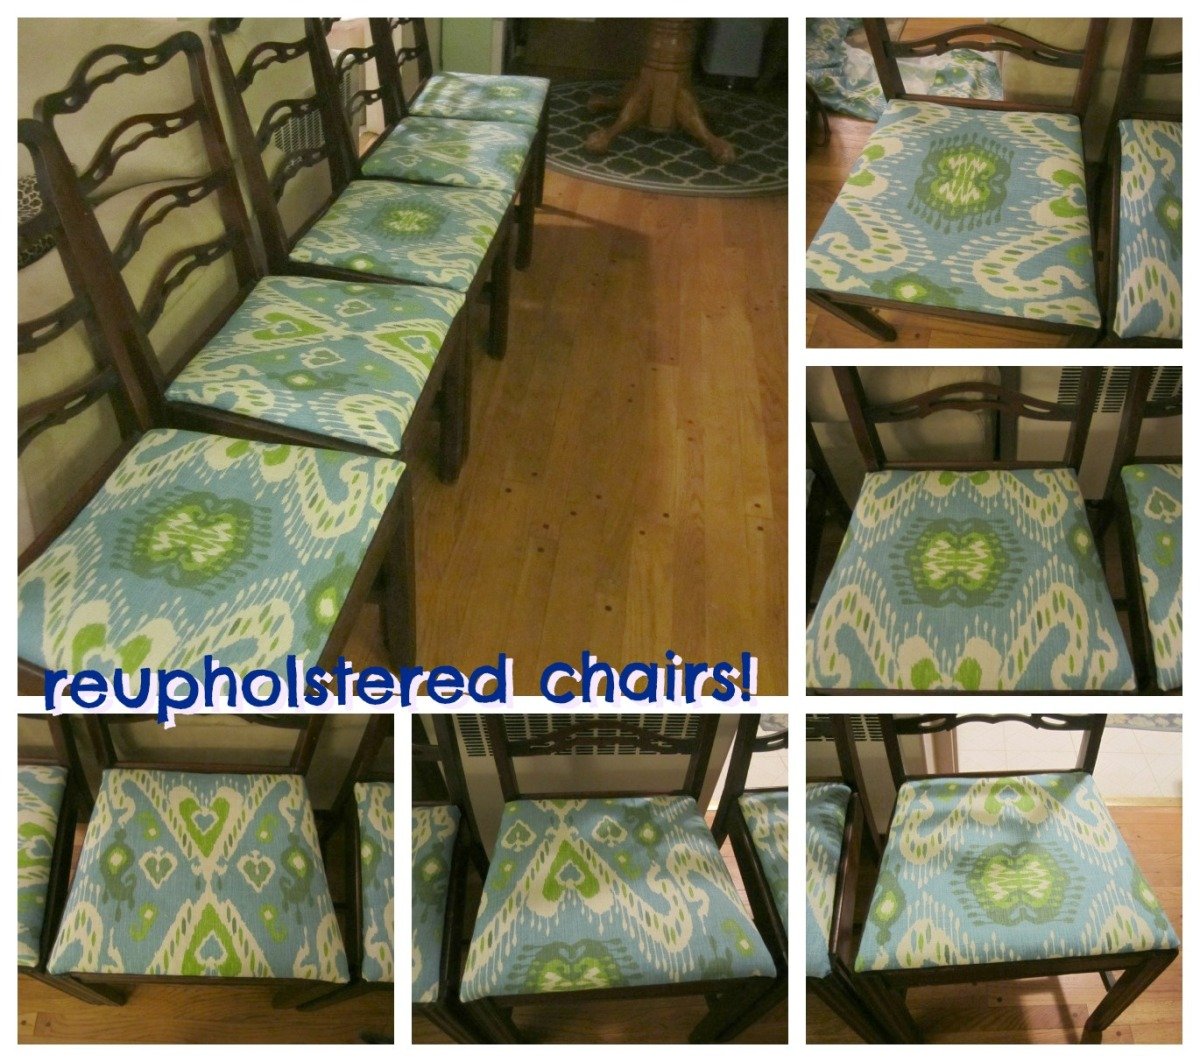 Reupholstering Dining Room Chairs: Reupholstering Dining Room Chairs